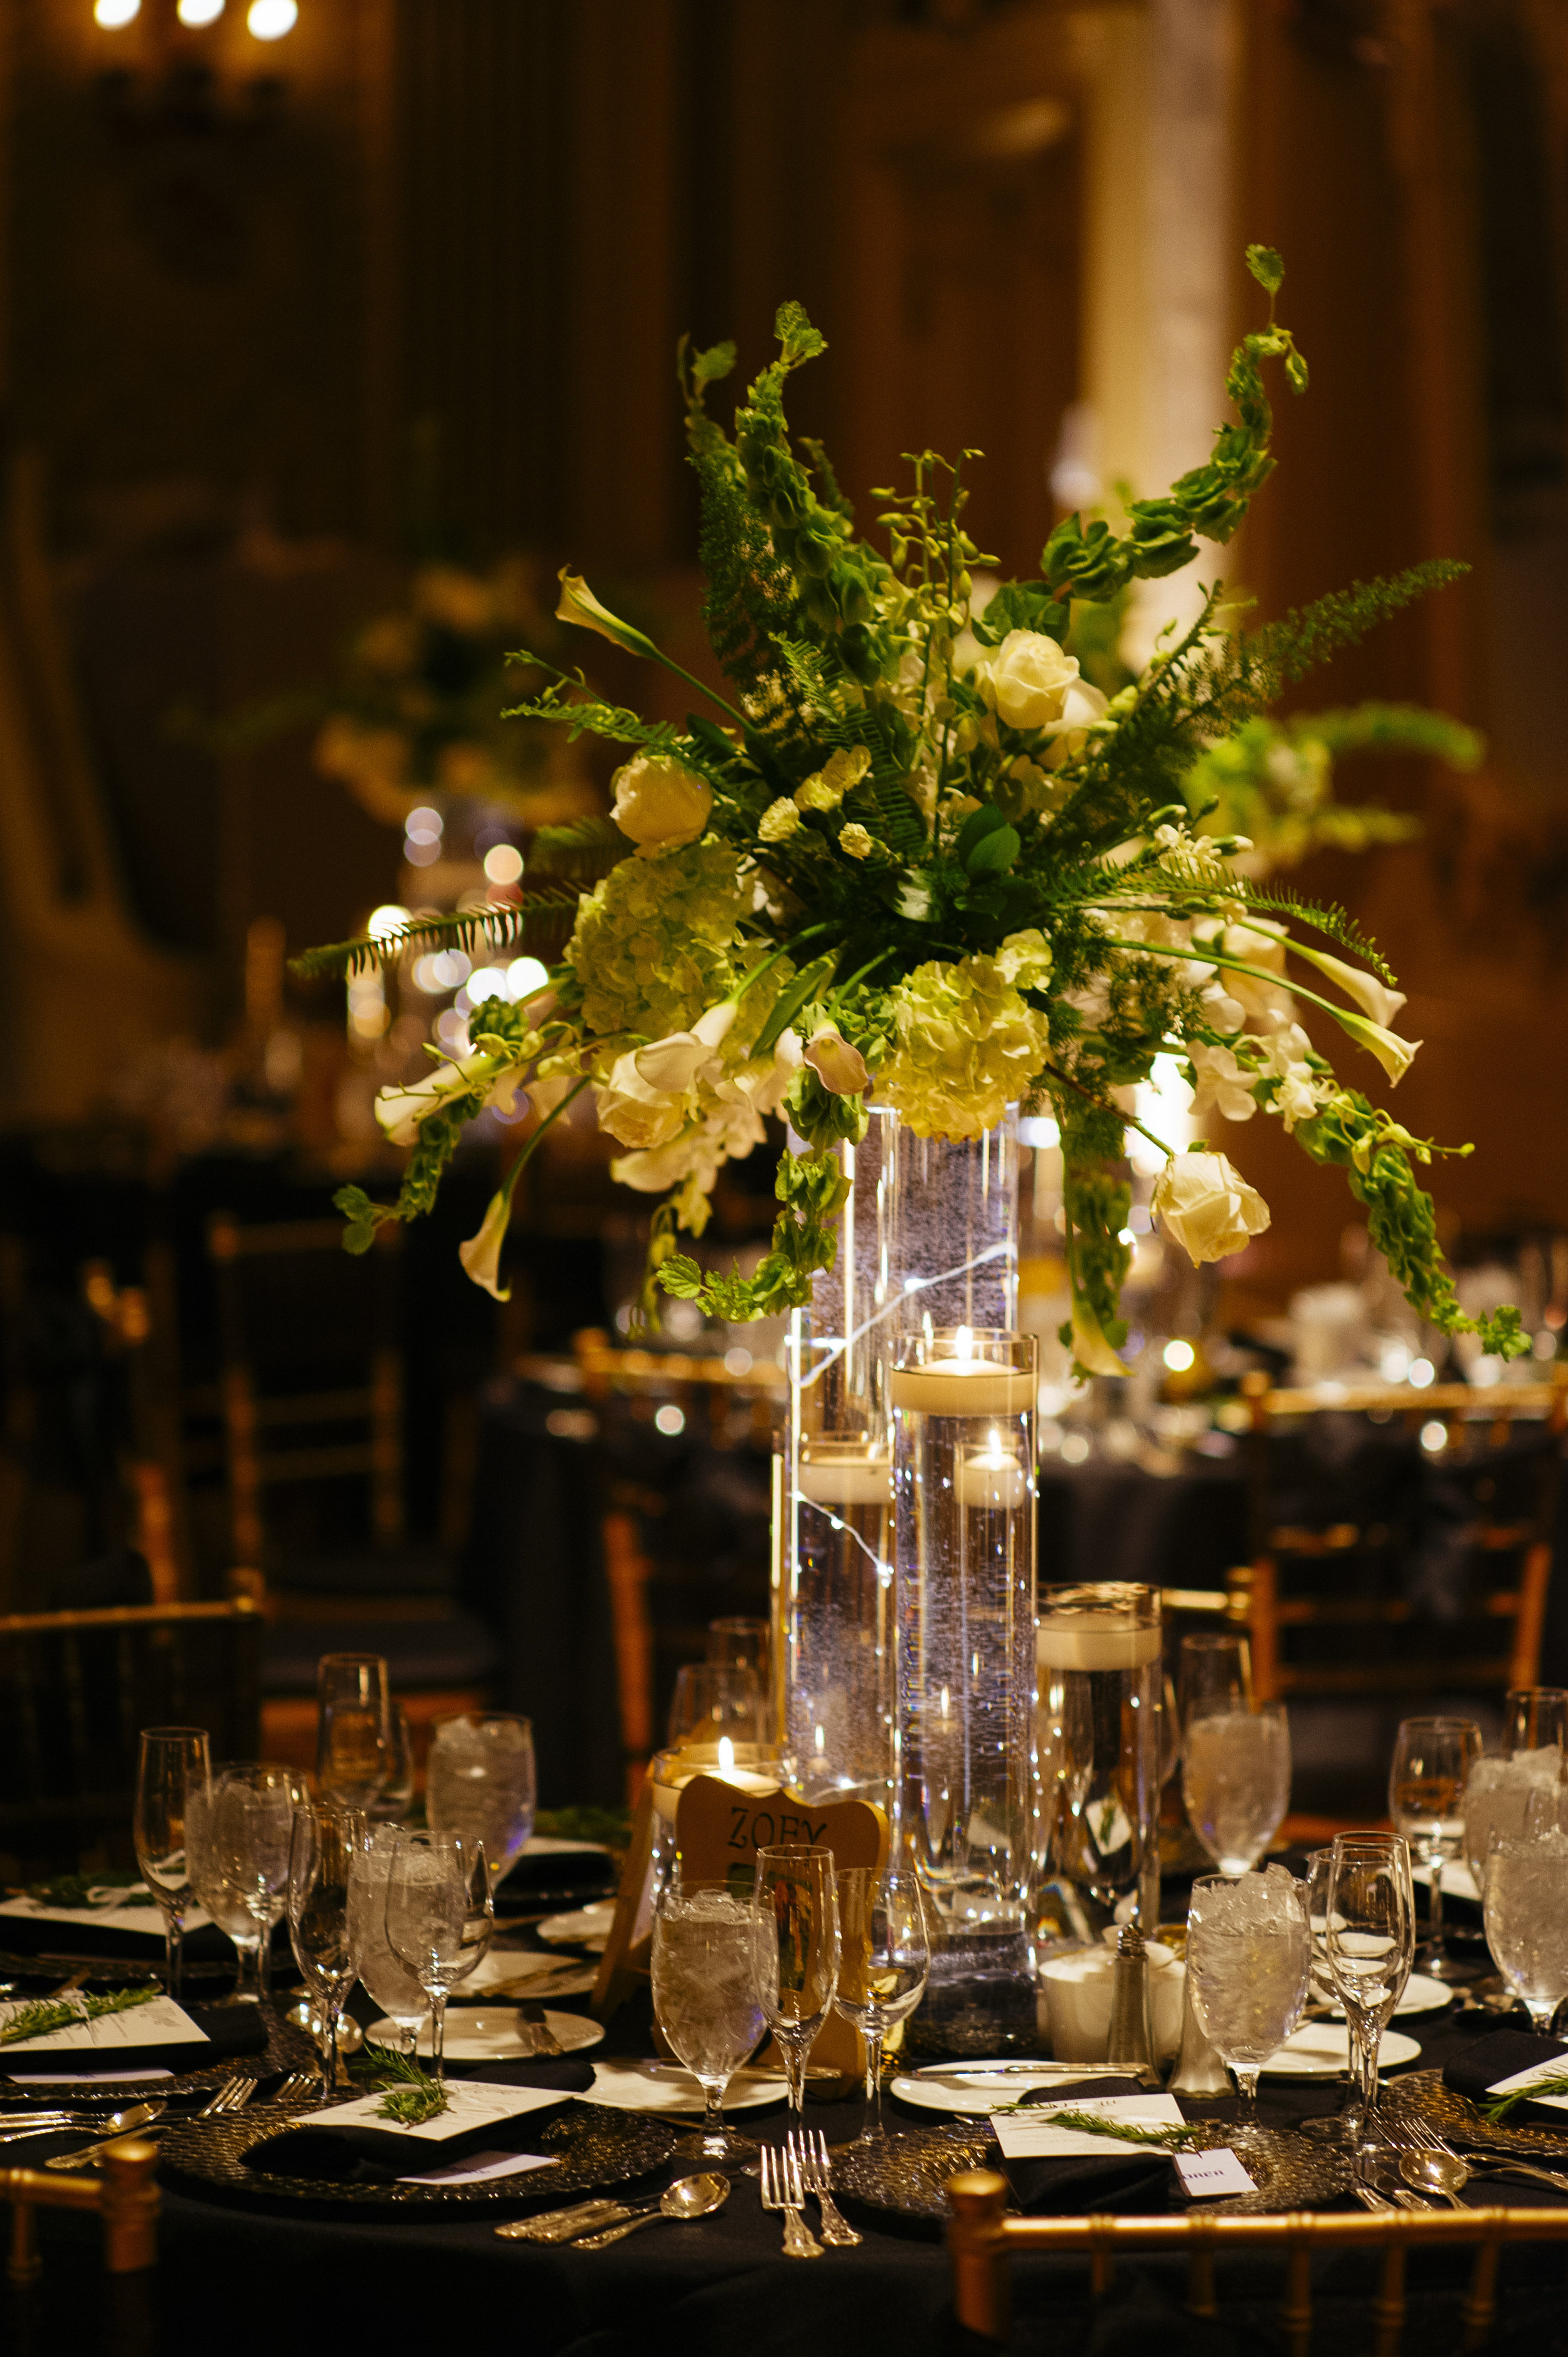 Hotel DuPont Wedding Centerpiece Bells of Ireland Roses Tulips Green and White Candlelight.jpg